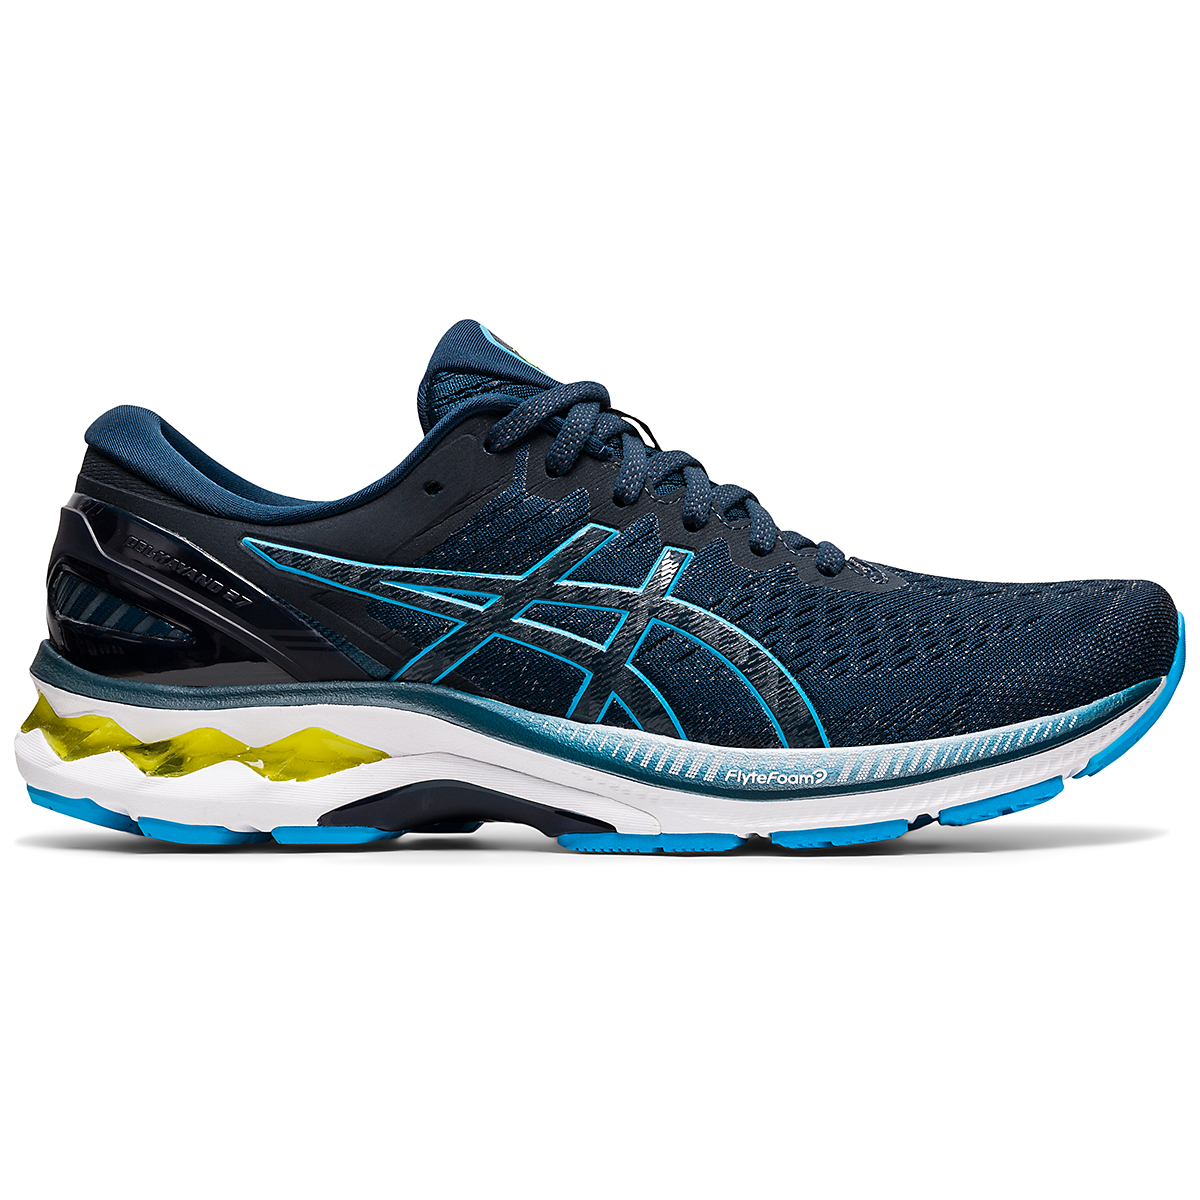 Men's Asics GEL-Kayano 27 Running Shoe - Color: French Blue/Dig - Size: 7.5 - Width: Regular, French Blue/Dig, large, image 1